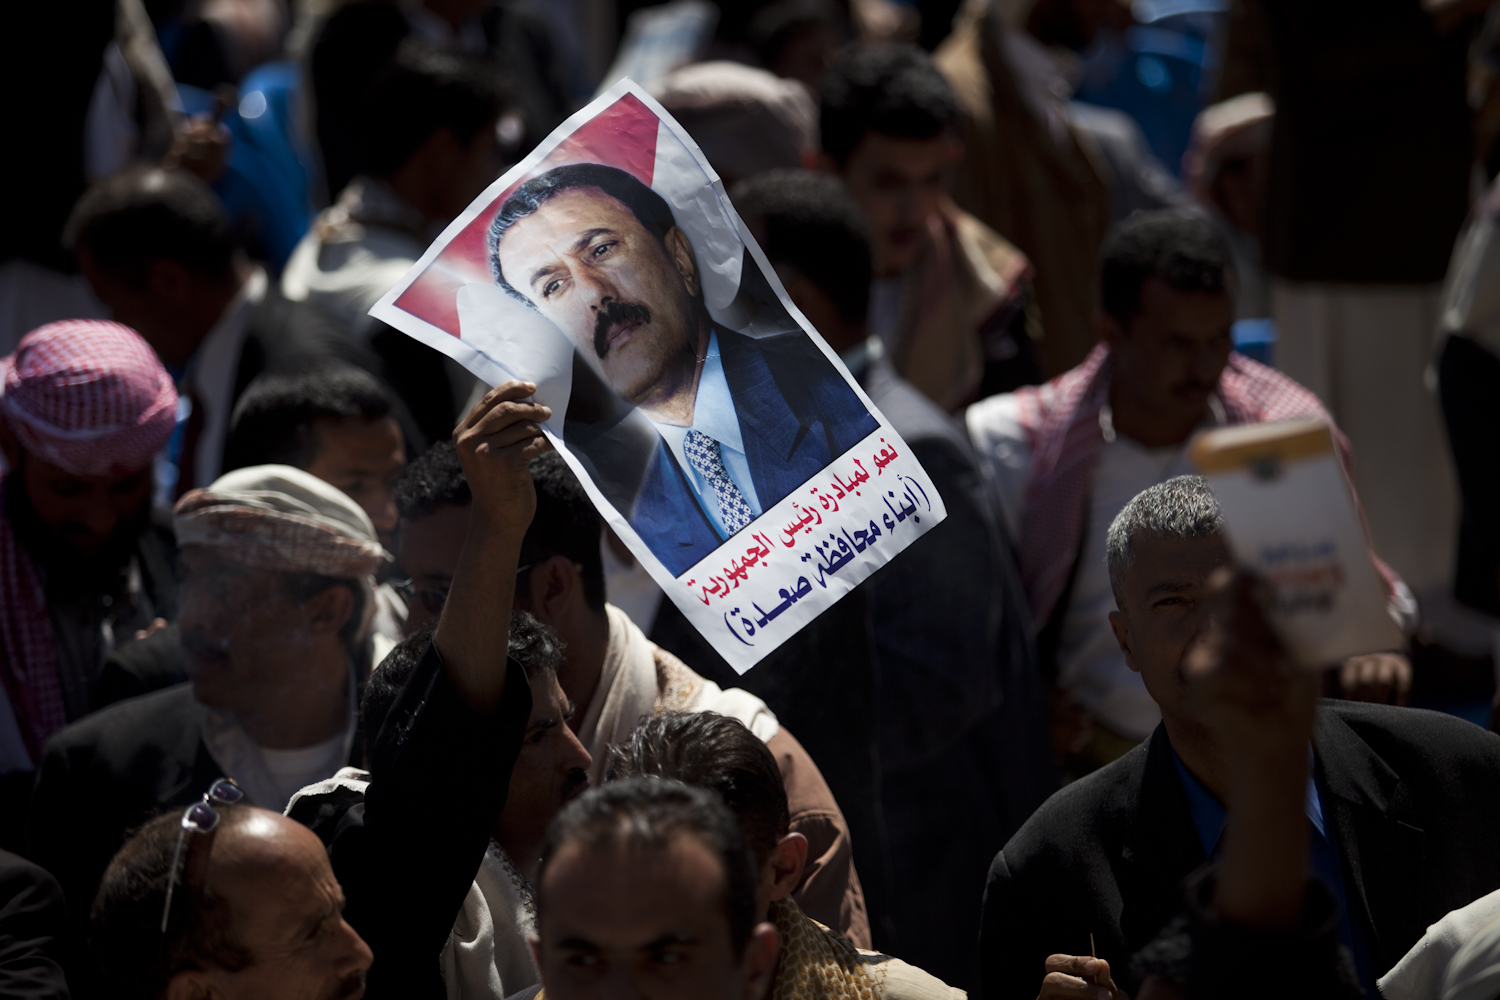 A poster of President Ali Abdullah Saleh floats through a crowd in a stadium after the president gave a speech to thousands of supporters on March 10, 2011 in Sana, Yemen. Thousands of Yemenis have been protesting around the country calling for the ouster of President Ali Abdullah Saleh, who has been in power for 32 years.